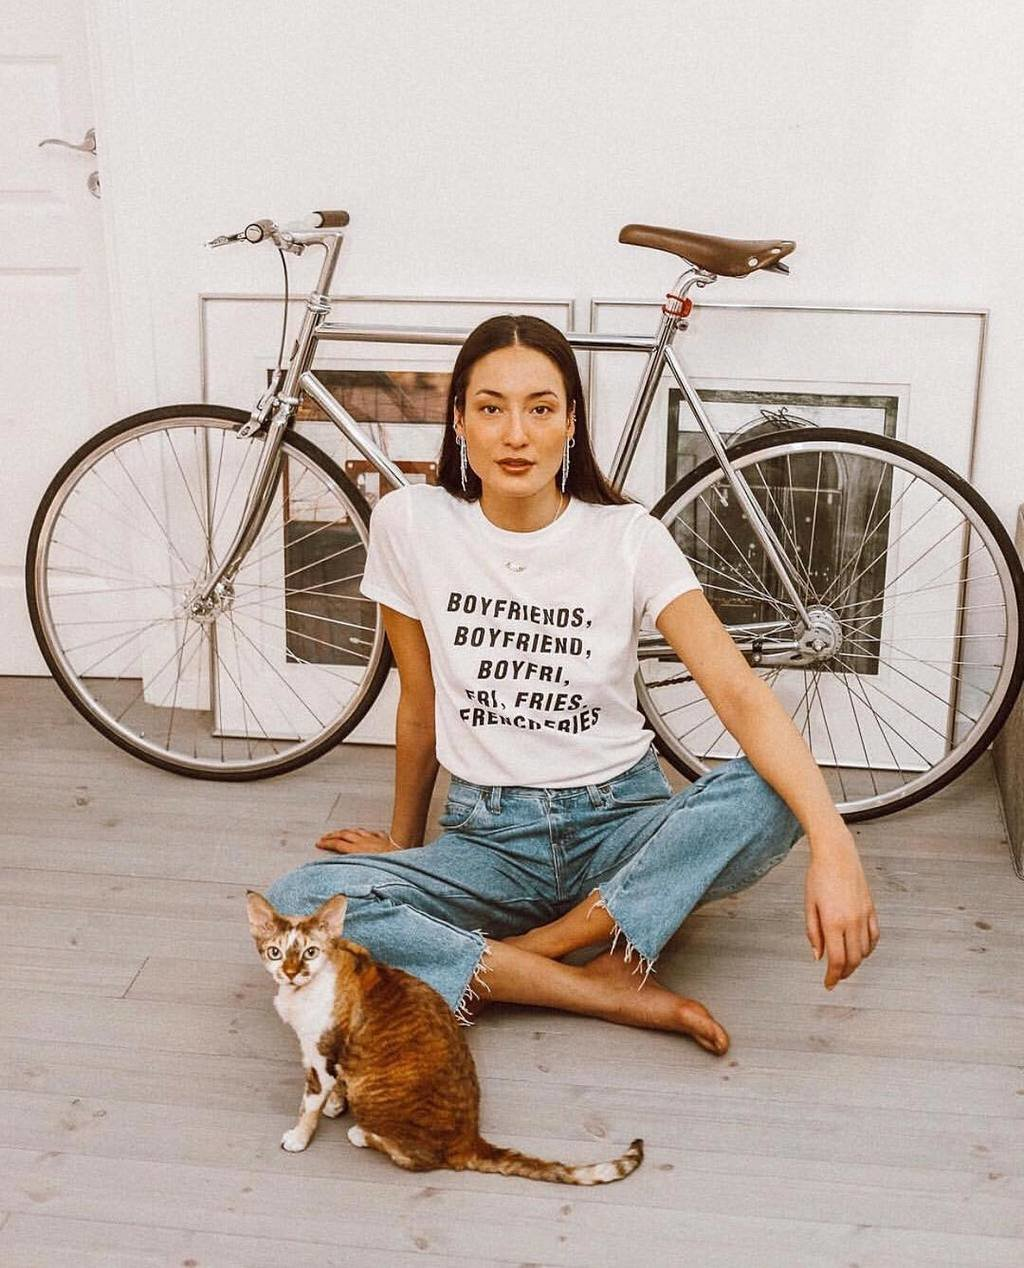 I will never sit around and wait for a man, unless he's delivering pizza 🍕😏 Beauty @hannafridh wearing Single tee, grab yours from the link in bio #bikbok #bikboklife image